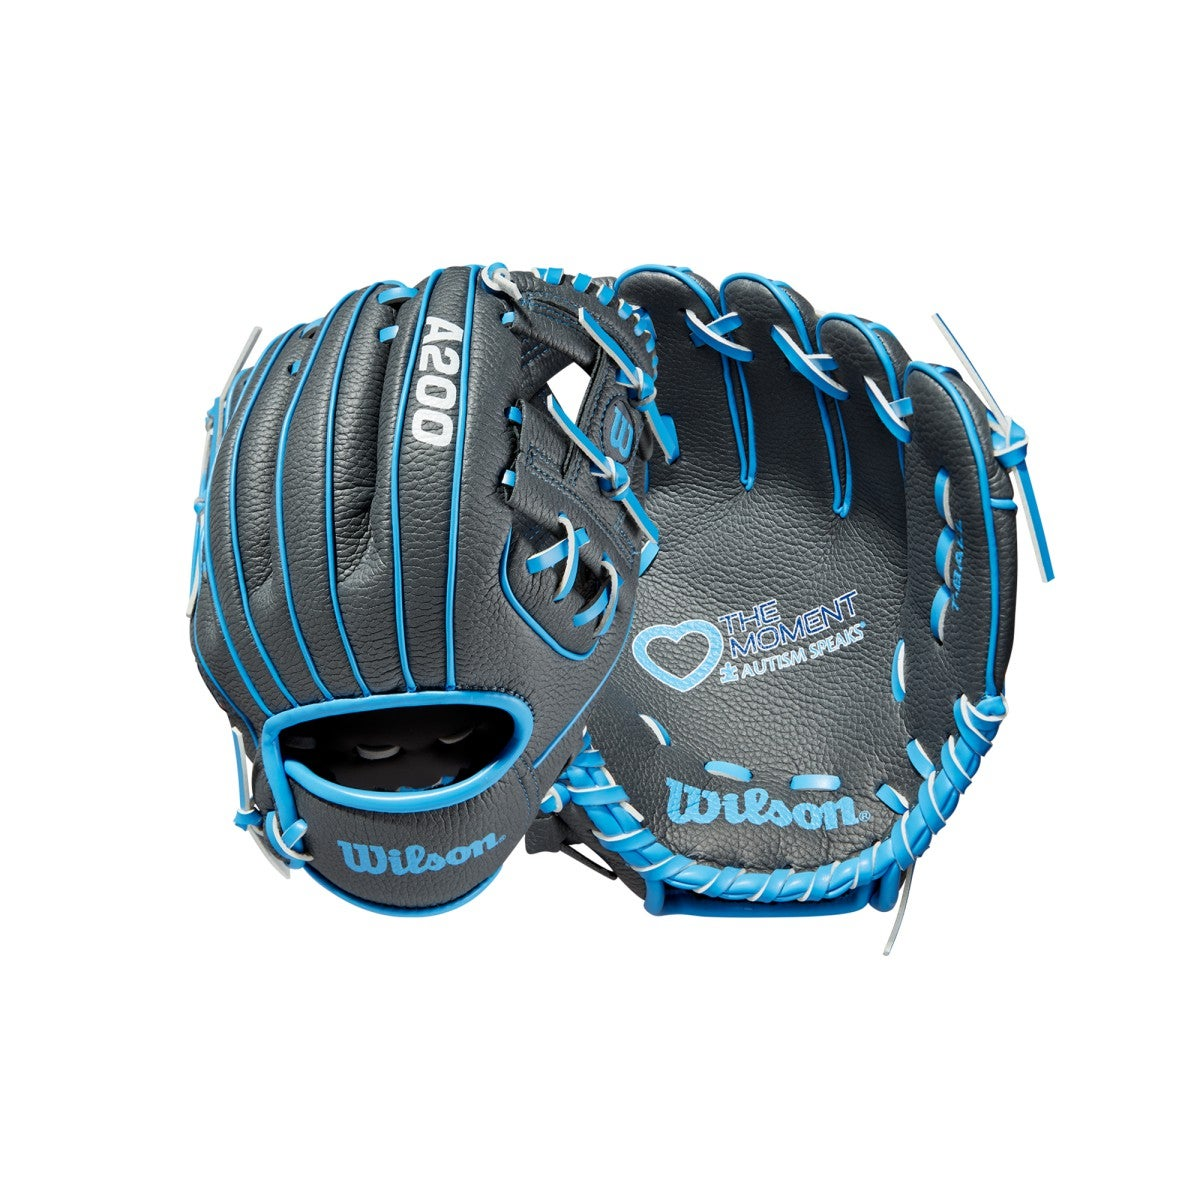 2020 Wilson A200 Love the Moment Edition 10